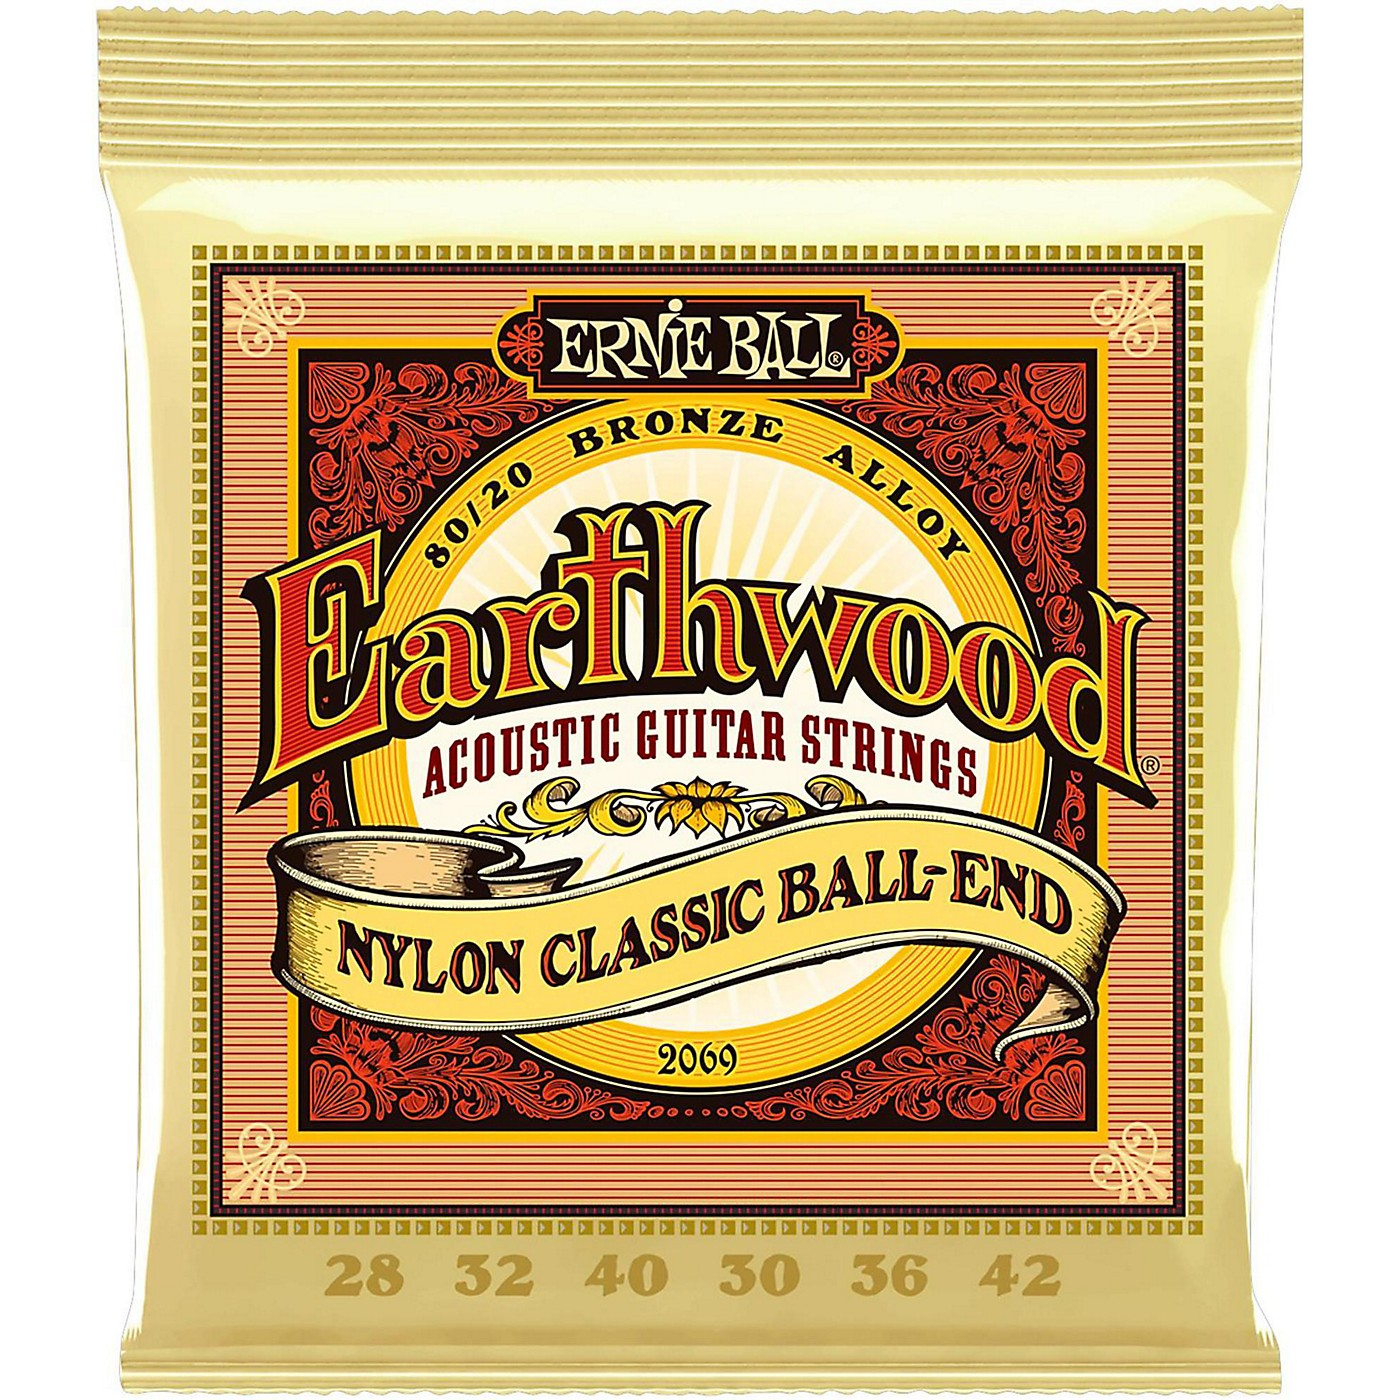 Ernie Ball 2069 Earthwood 80/20 Bronze Folk Nylon Ball End Acoustic Guitar Strings thumbnail